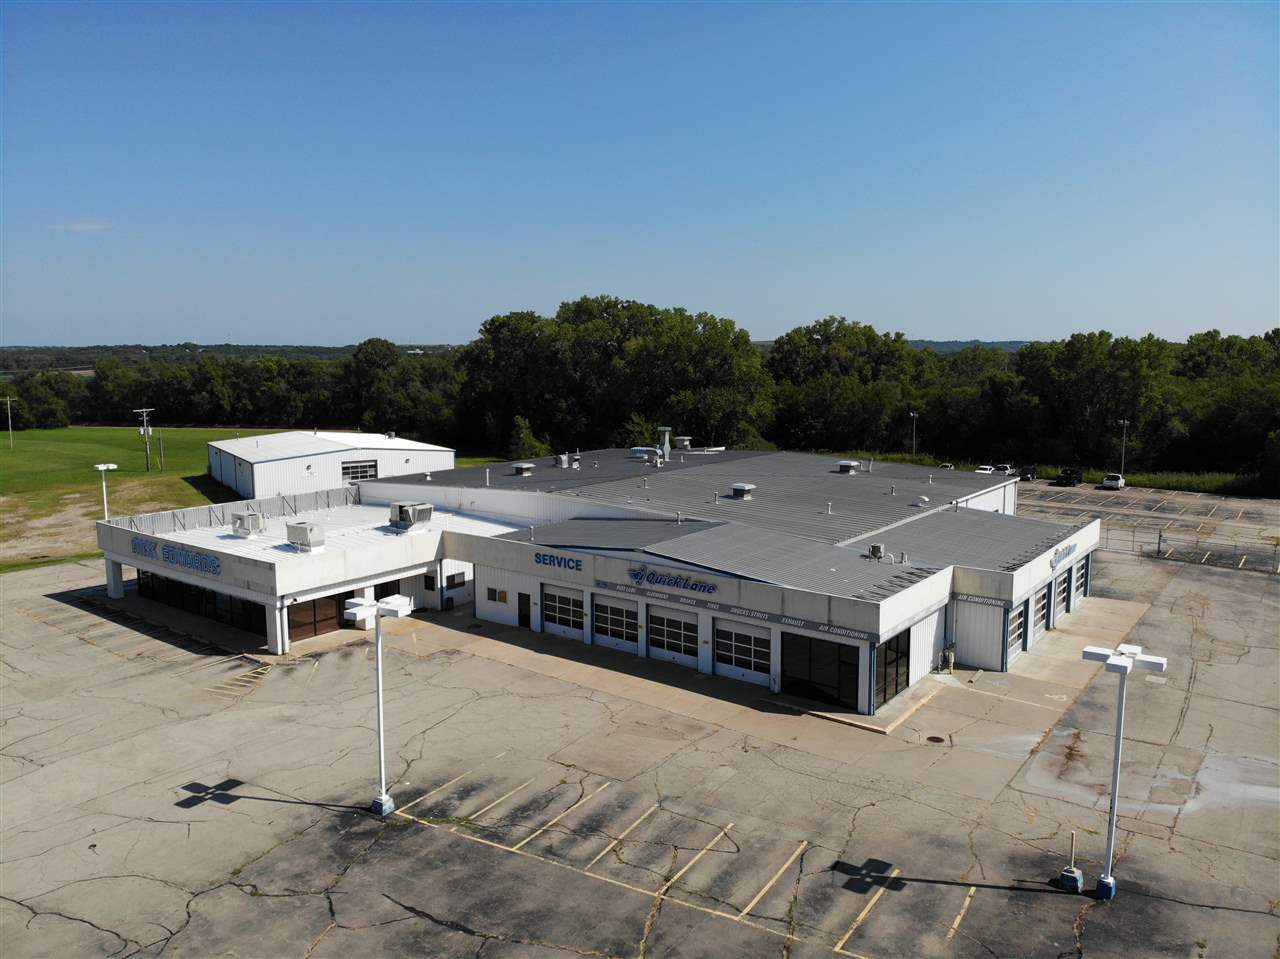 A Great Investment opportunity for a car Dealership or industrial business. This move in ready facility is 23,187 SF. Sale of property is required to be a business that collects sales tax.   Commercial area on located on a high traffic street.  https://youtu.be/PbFnIqotgA4